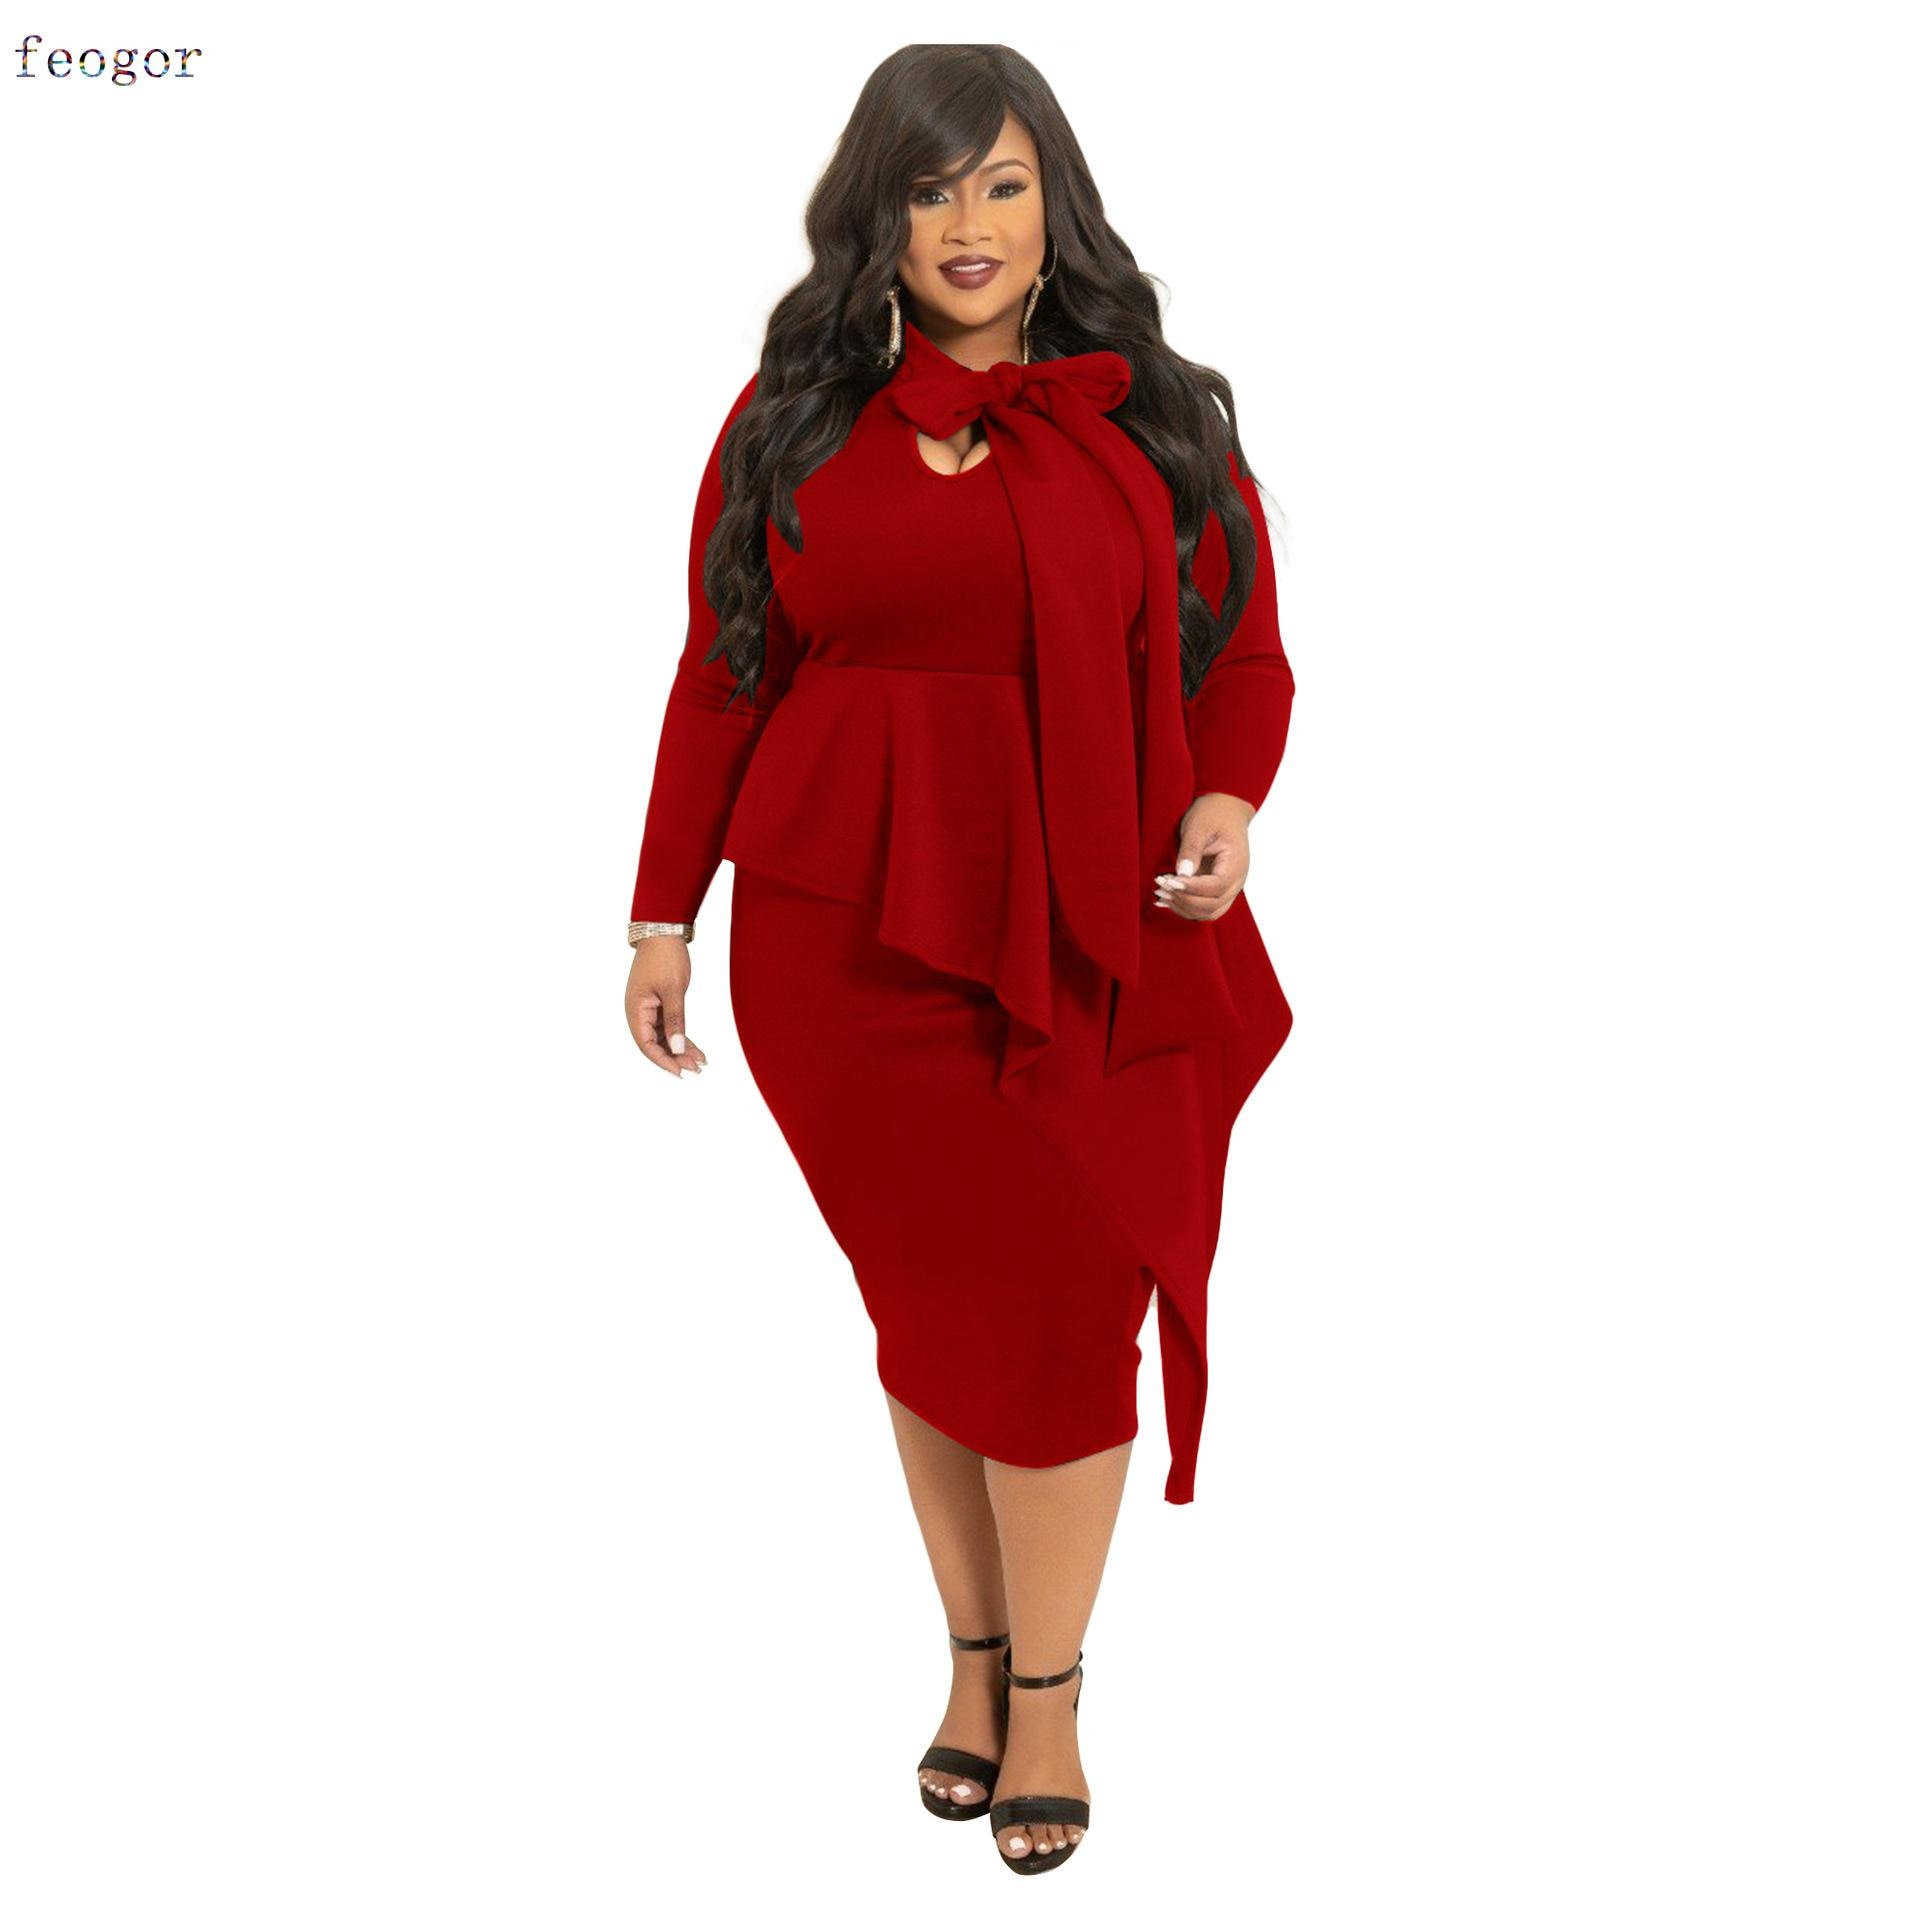 Women's Clothing Plus Size Dresses 2021 Autumn Winter New Bowknot Dress Female Urban Commuter Casual Fashion Long Sleeve Dress 5xl plus size sexy dress pullover bodycon casual fashion female autumn spring home clothes long oversized dresses indian new